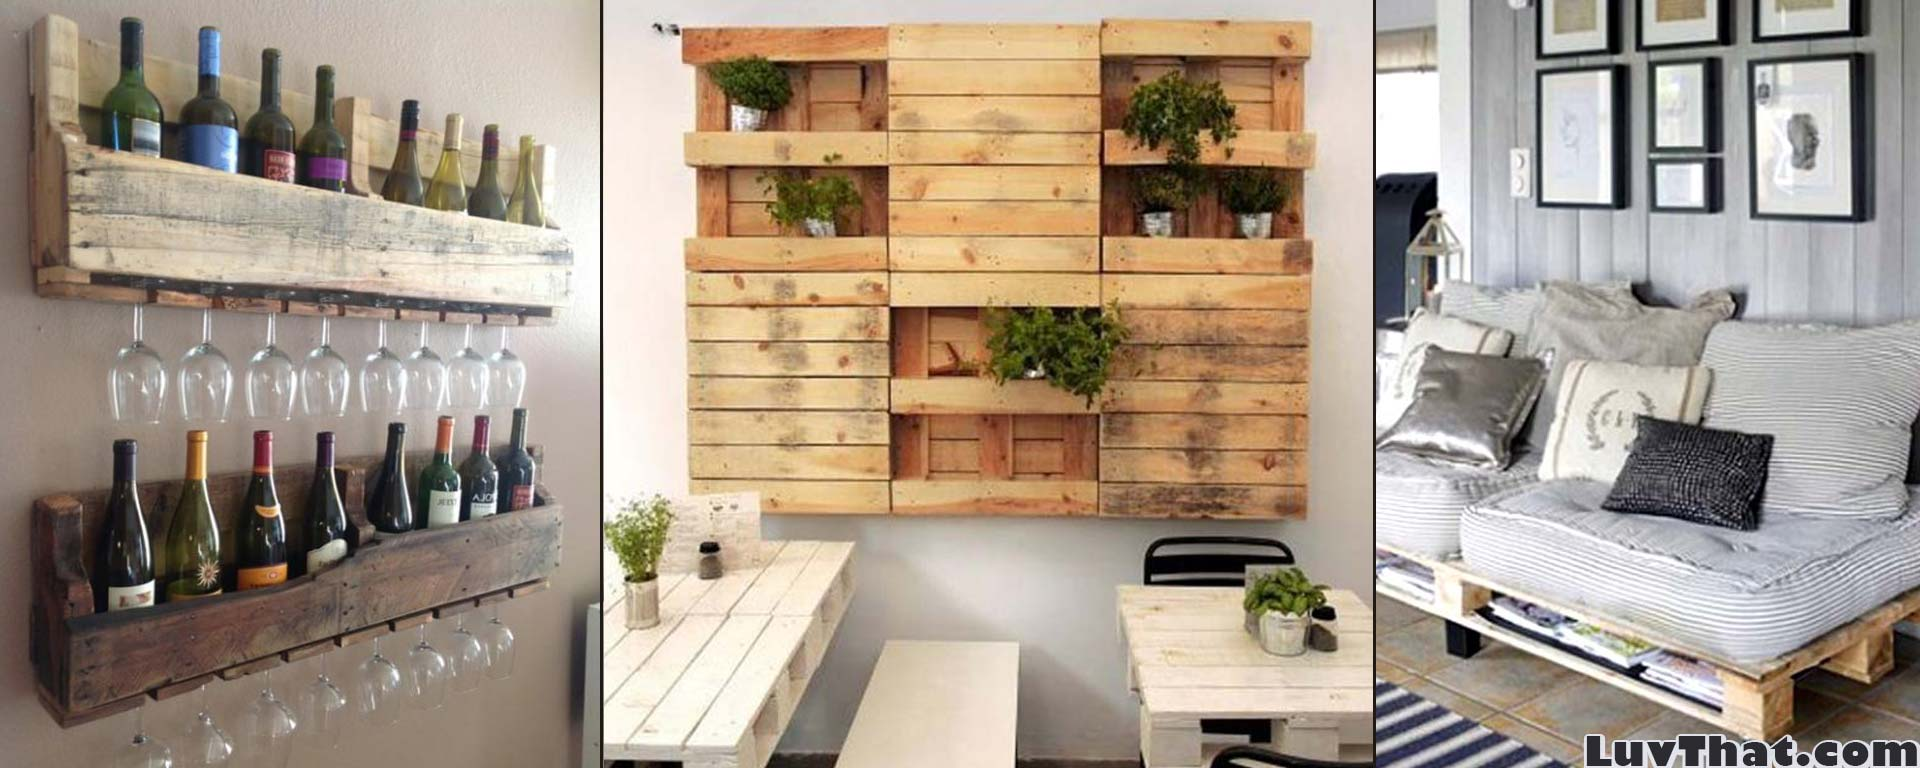 Cool wood pallet furniture ideas luvthat for How to make furniture out of wood pallets